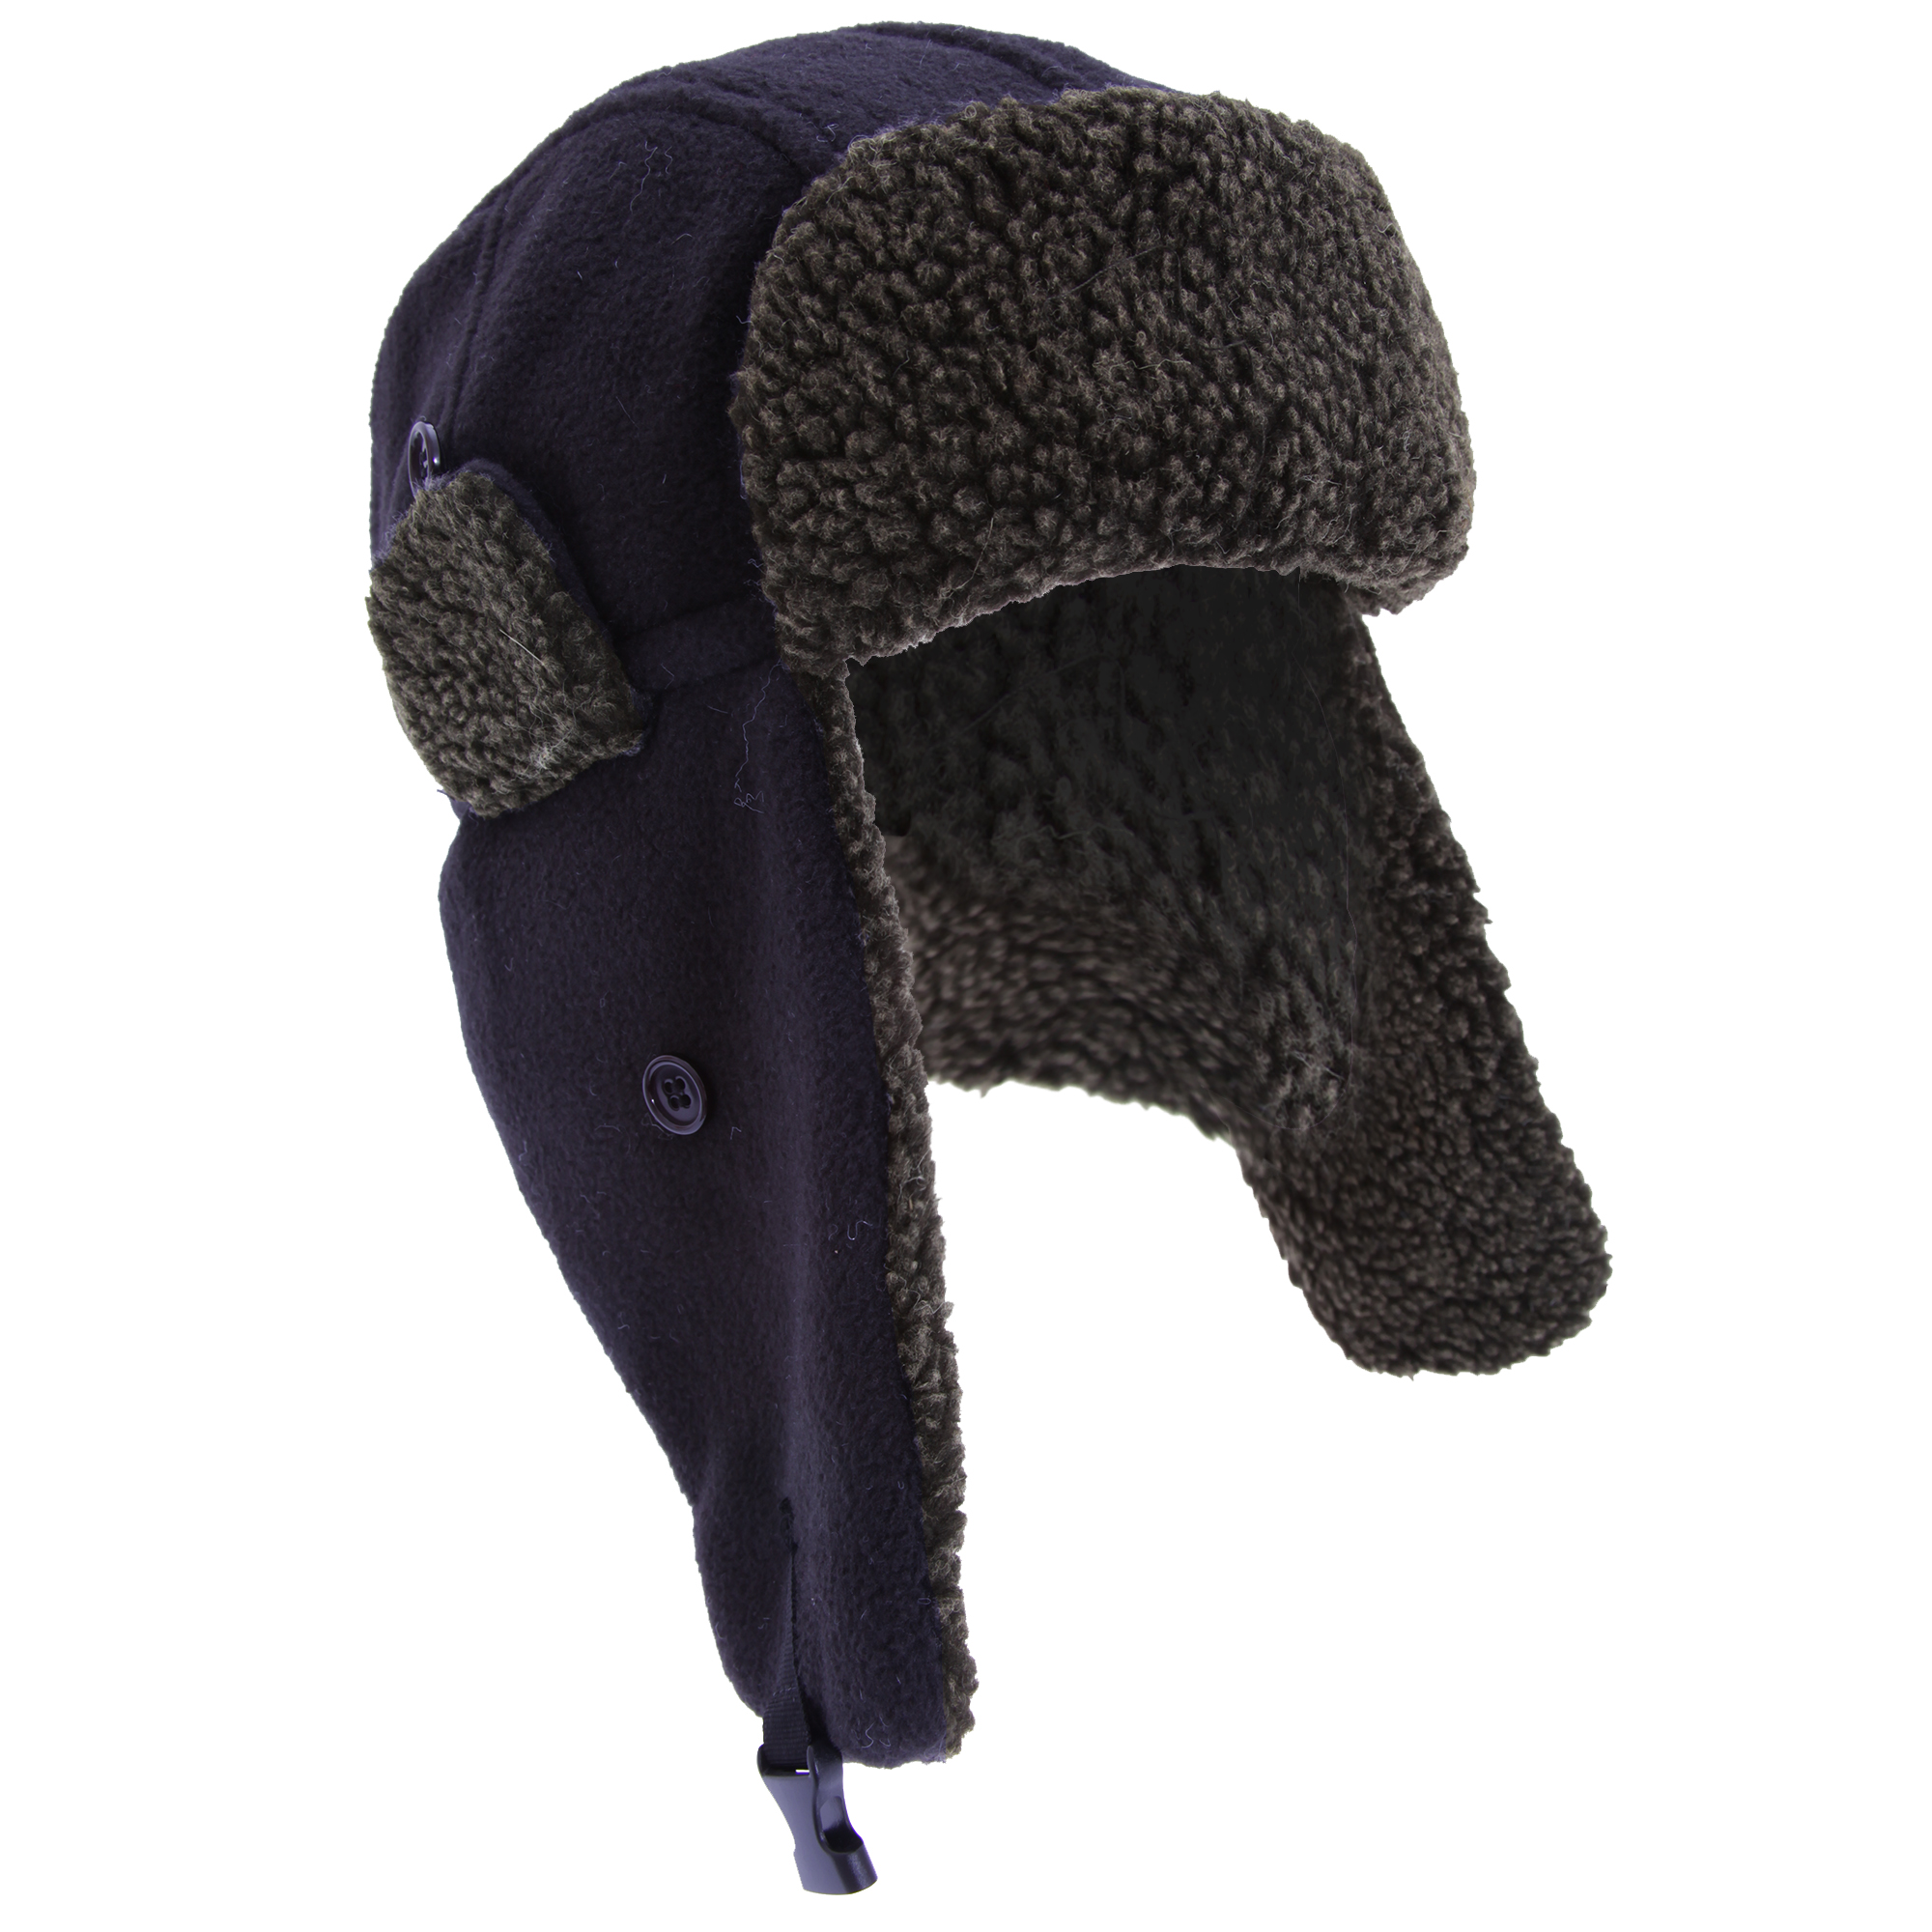 Shop for and buy mens trapper hat online at Macy's. Find mens trapper hat at Macy's.